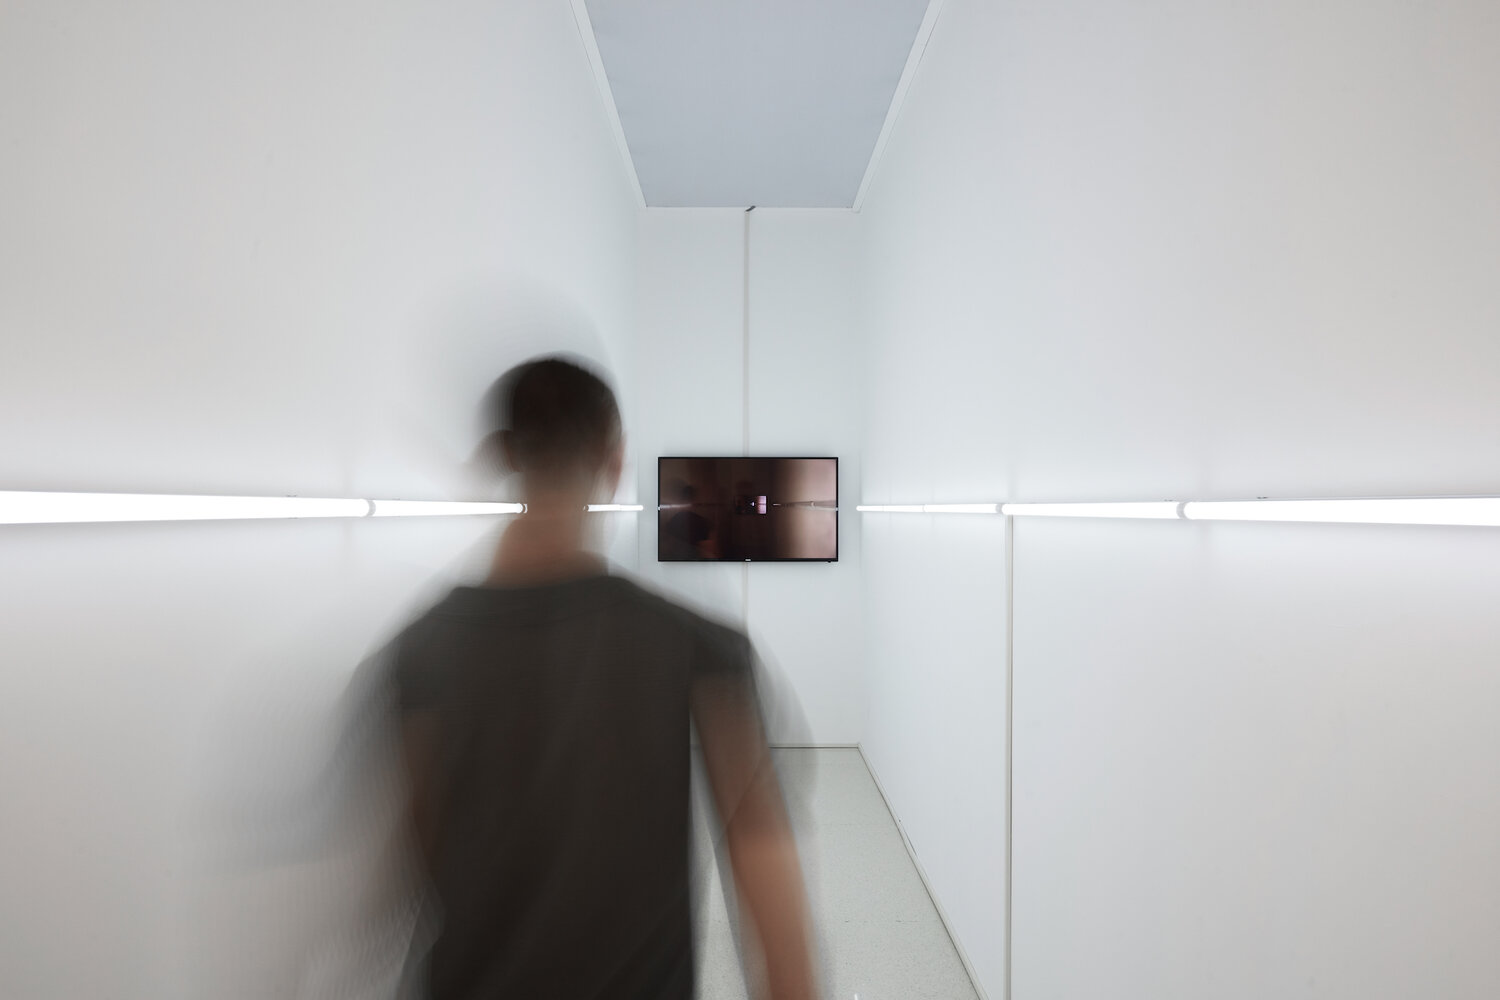 Feng Chen,  The Darker Side of Light: Shadow,  LED lights, monitors, camera, programming RGB Controller, 2018.